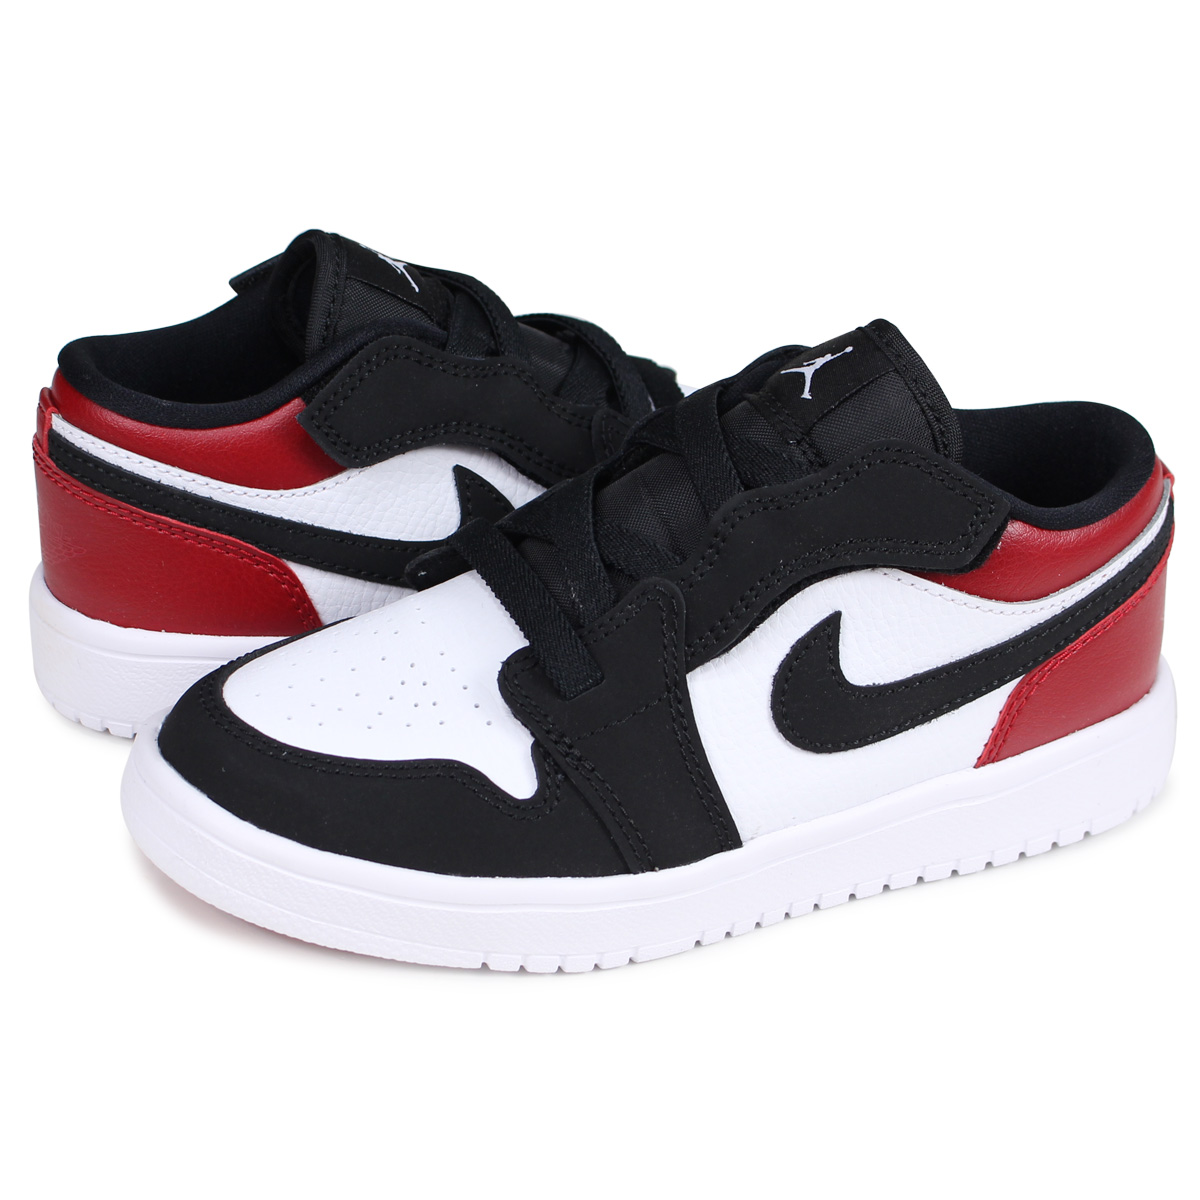 san francisco 60a4c ca87d Aj1 Black Toe Kid Youth — ZwiftItaly